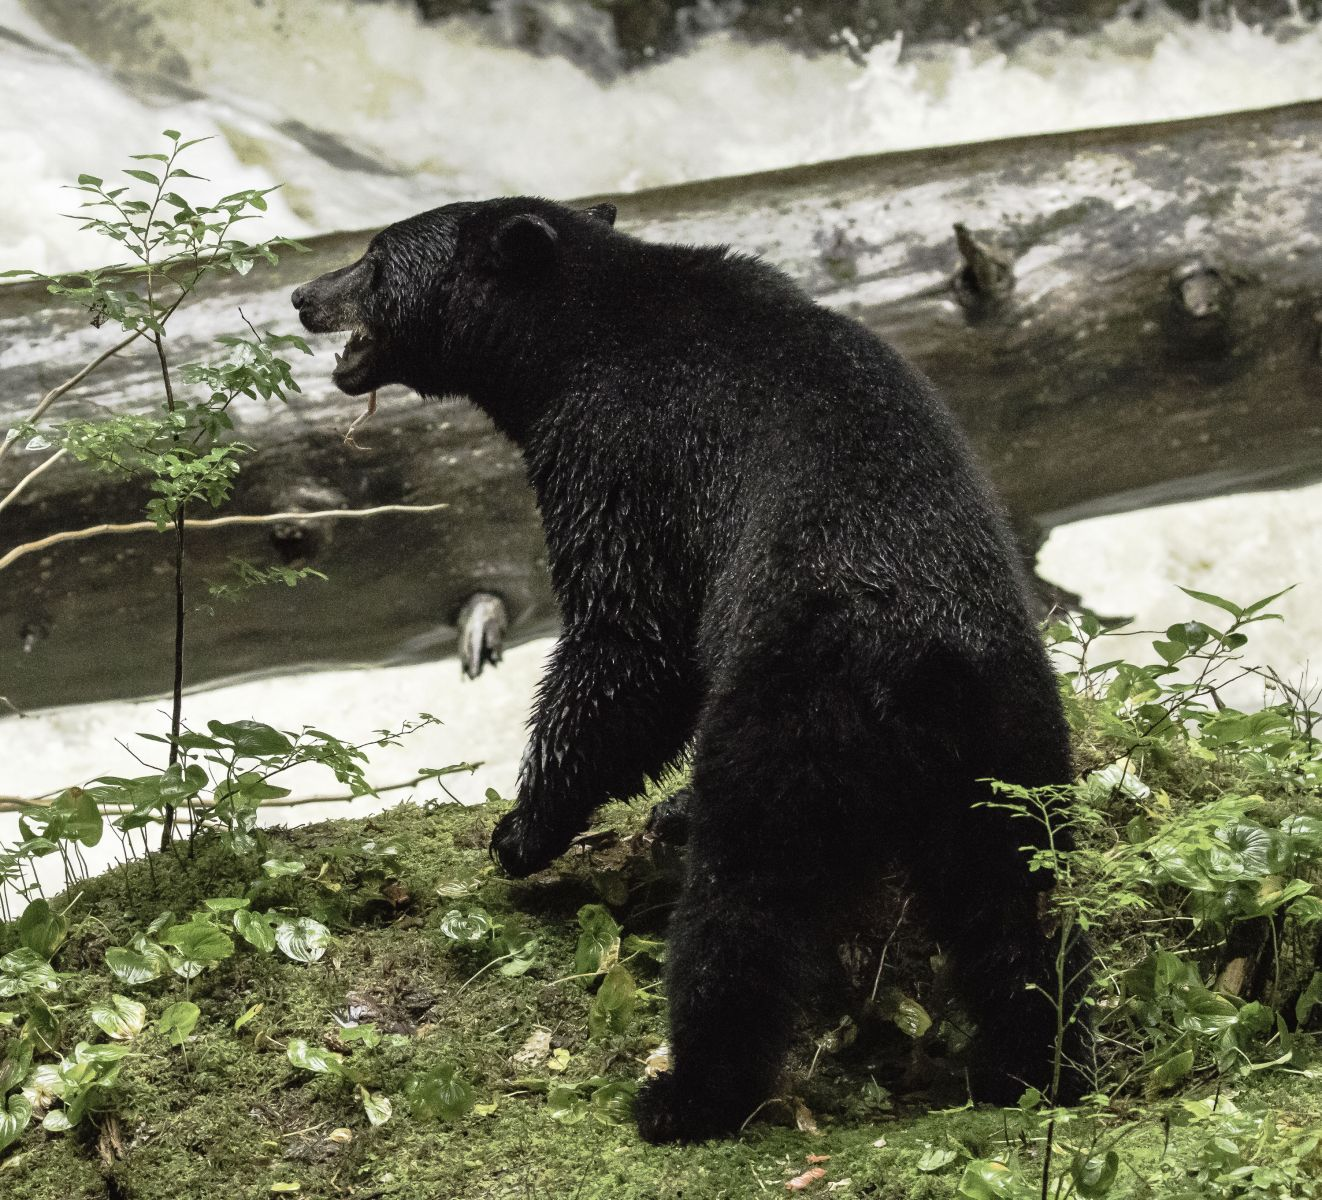 Exploring the Great Bear Rainforest of Canada (Part 2)